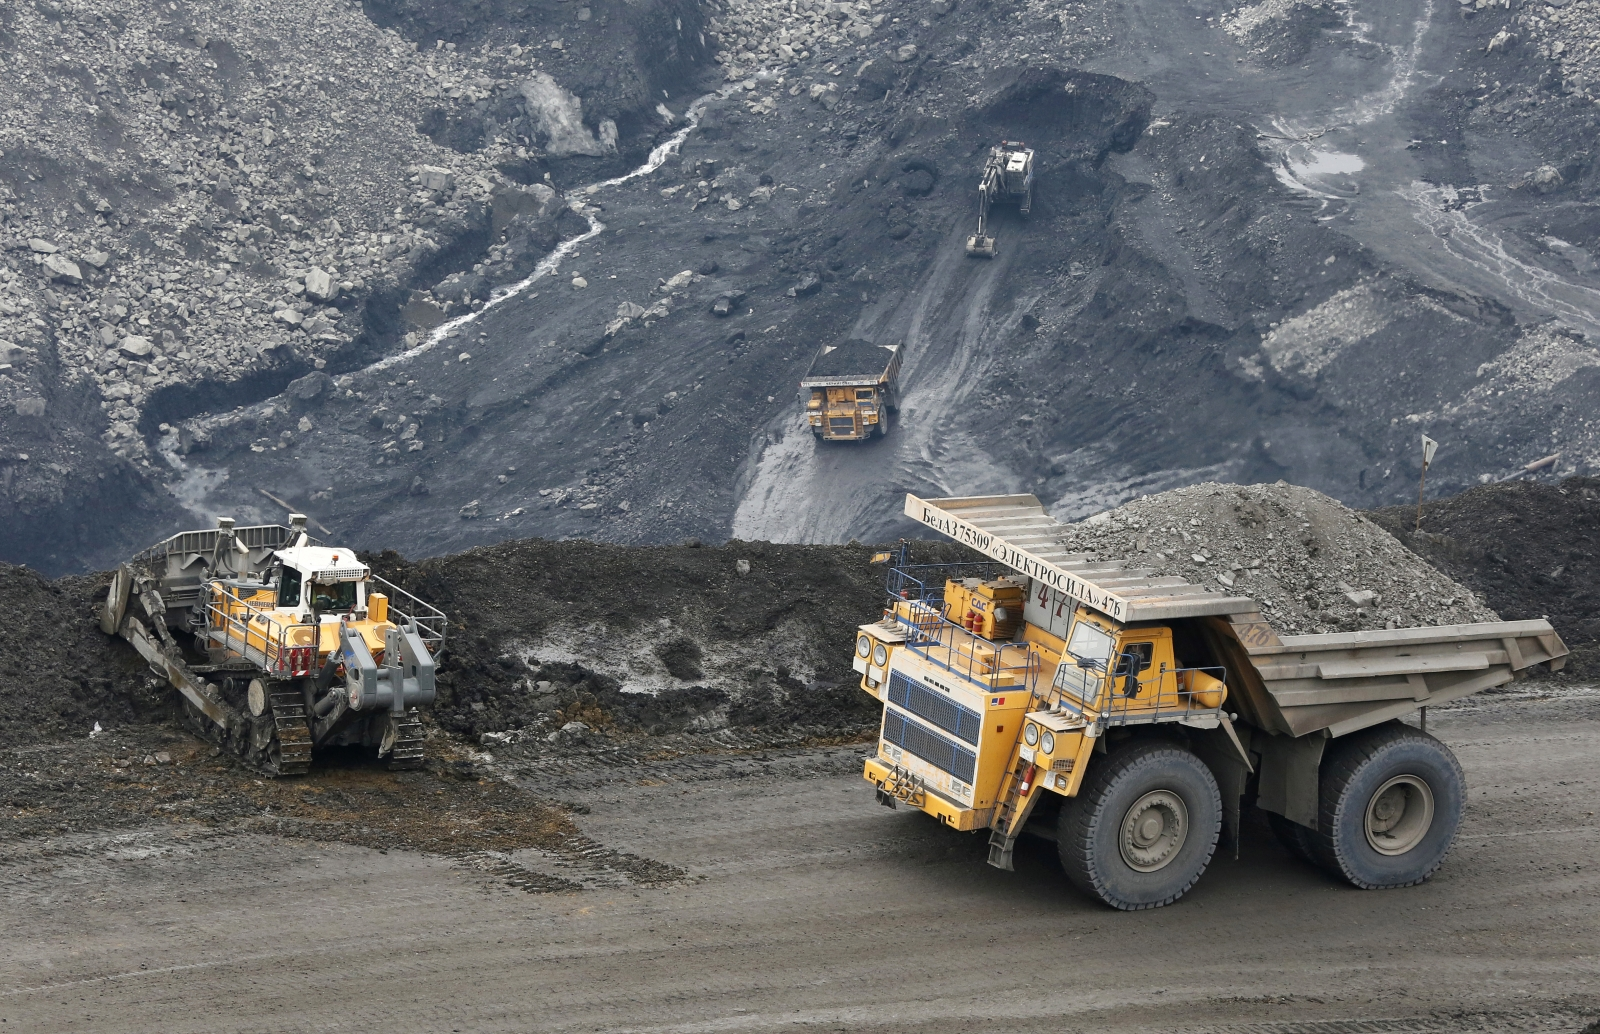 Mining industry continues to face significant economic headwinds, PwC warns